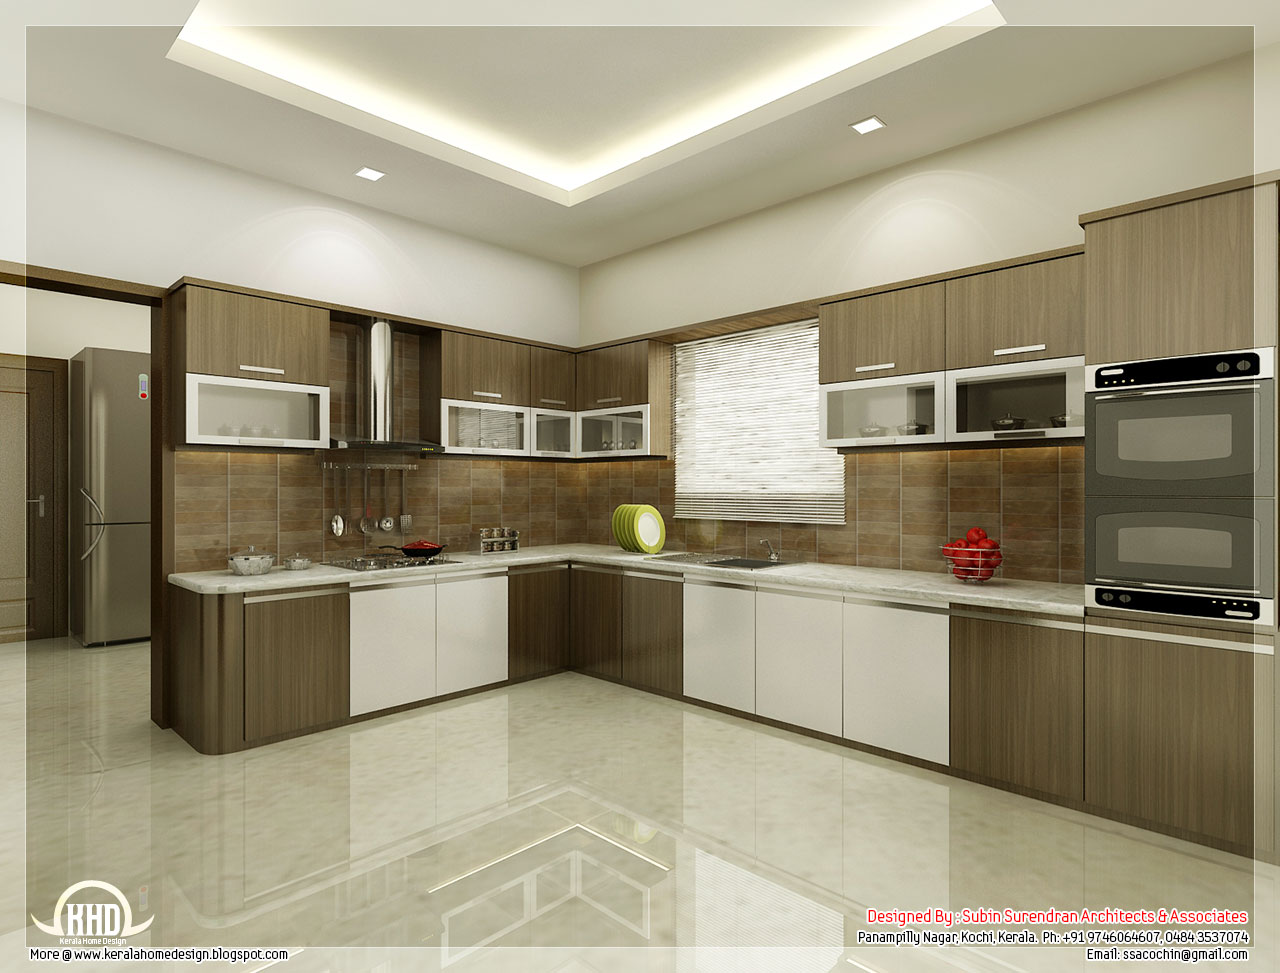 interior design ideas for kitchens kitchen and dining interiors kerala home design and floor plans 2633